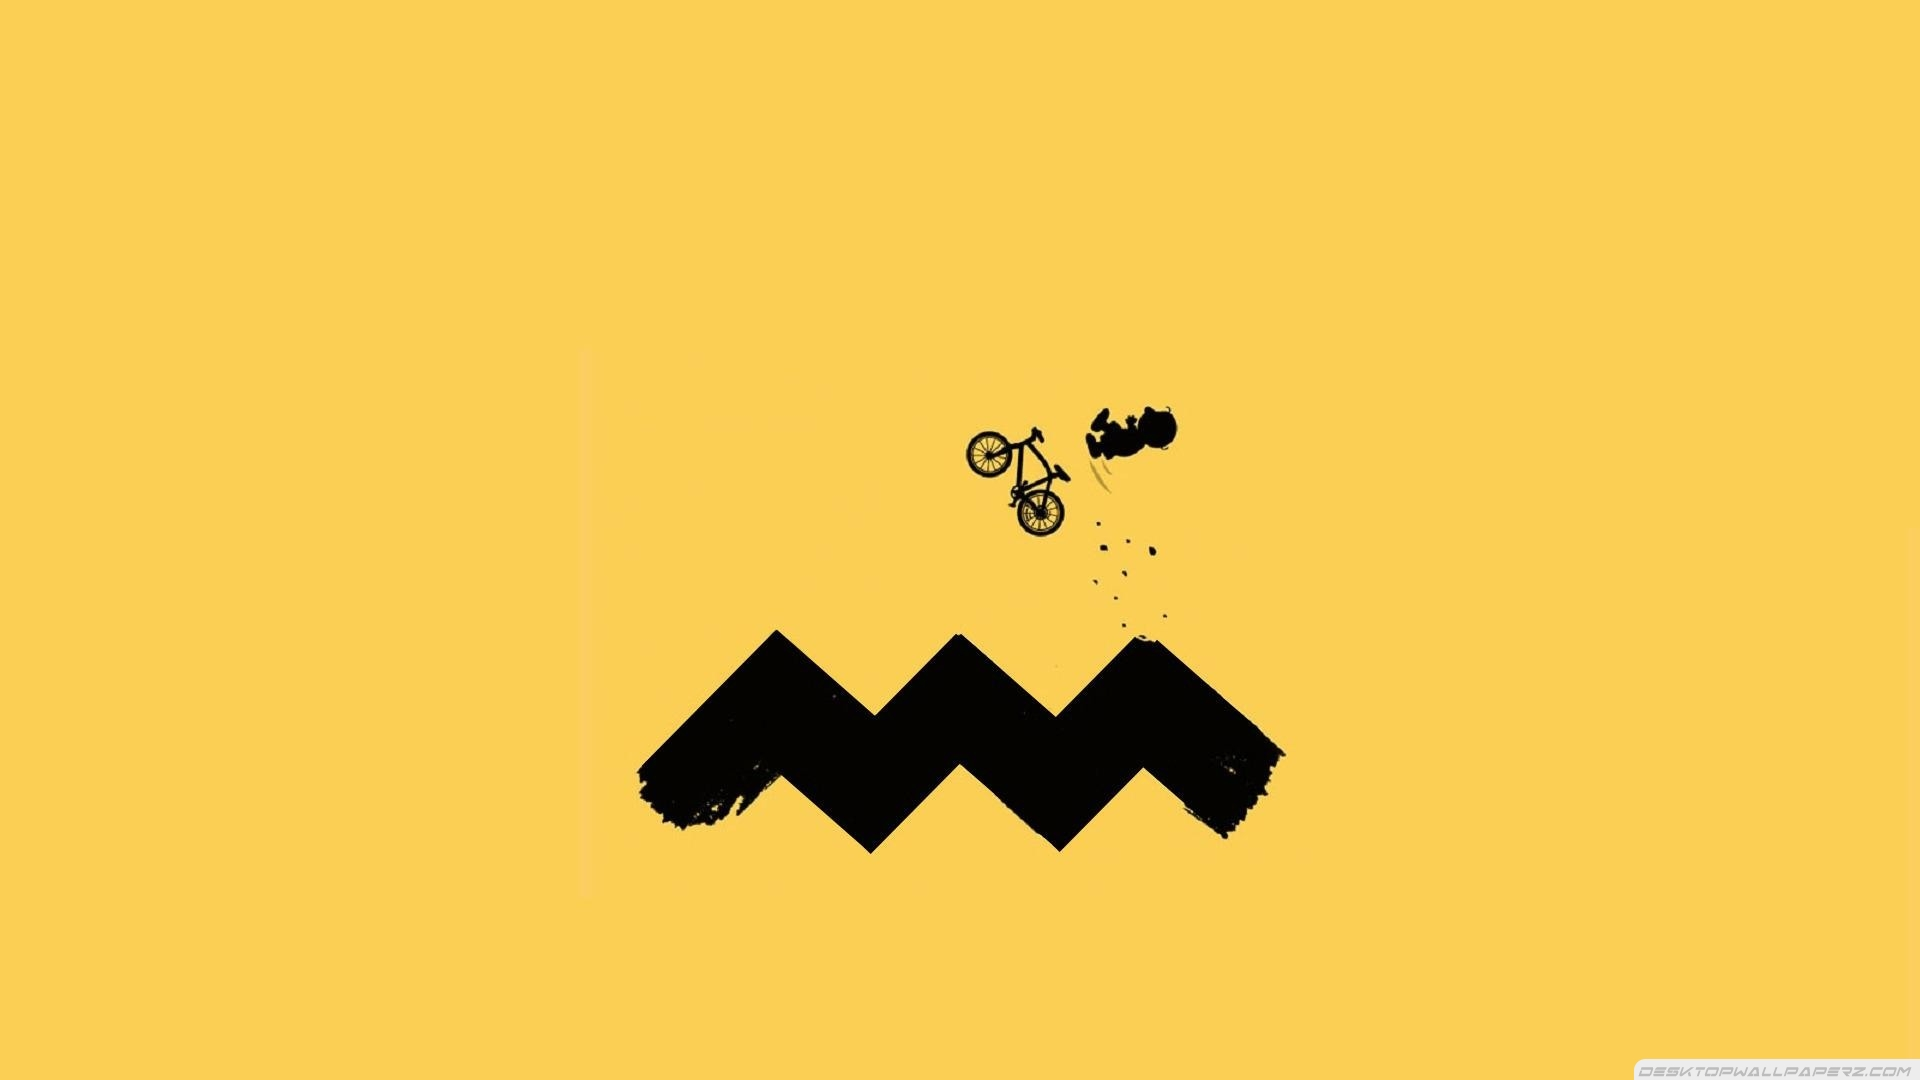 Minimalistic Funny Charlie Brown Cycling 19202151080 32476 1920x1080